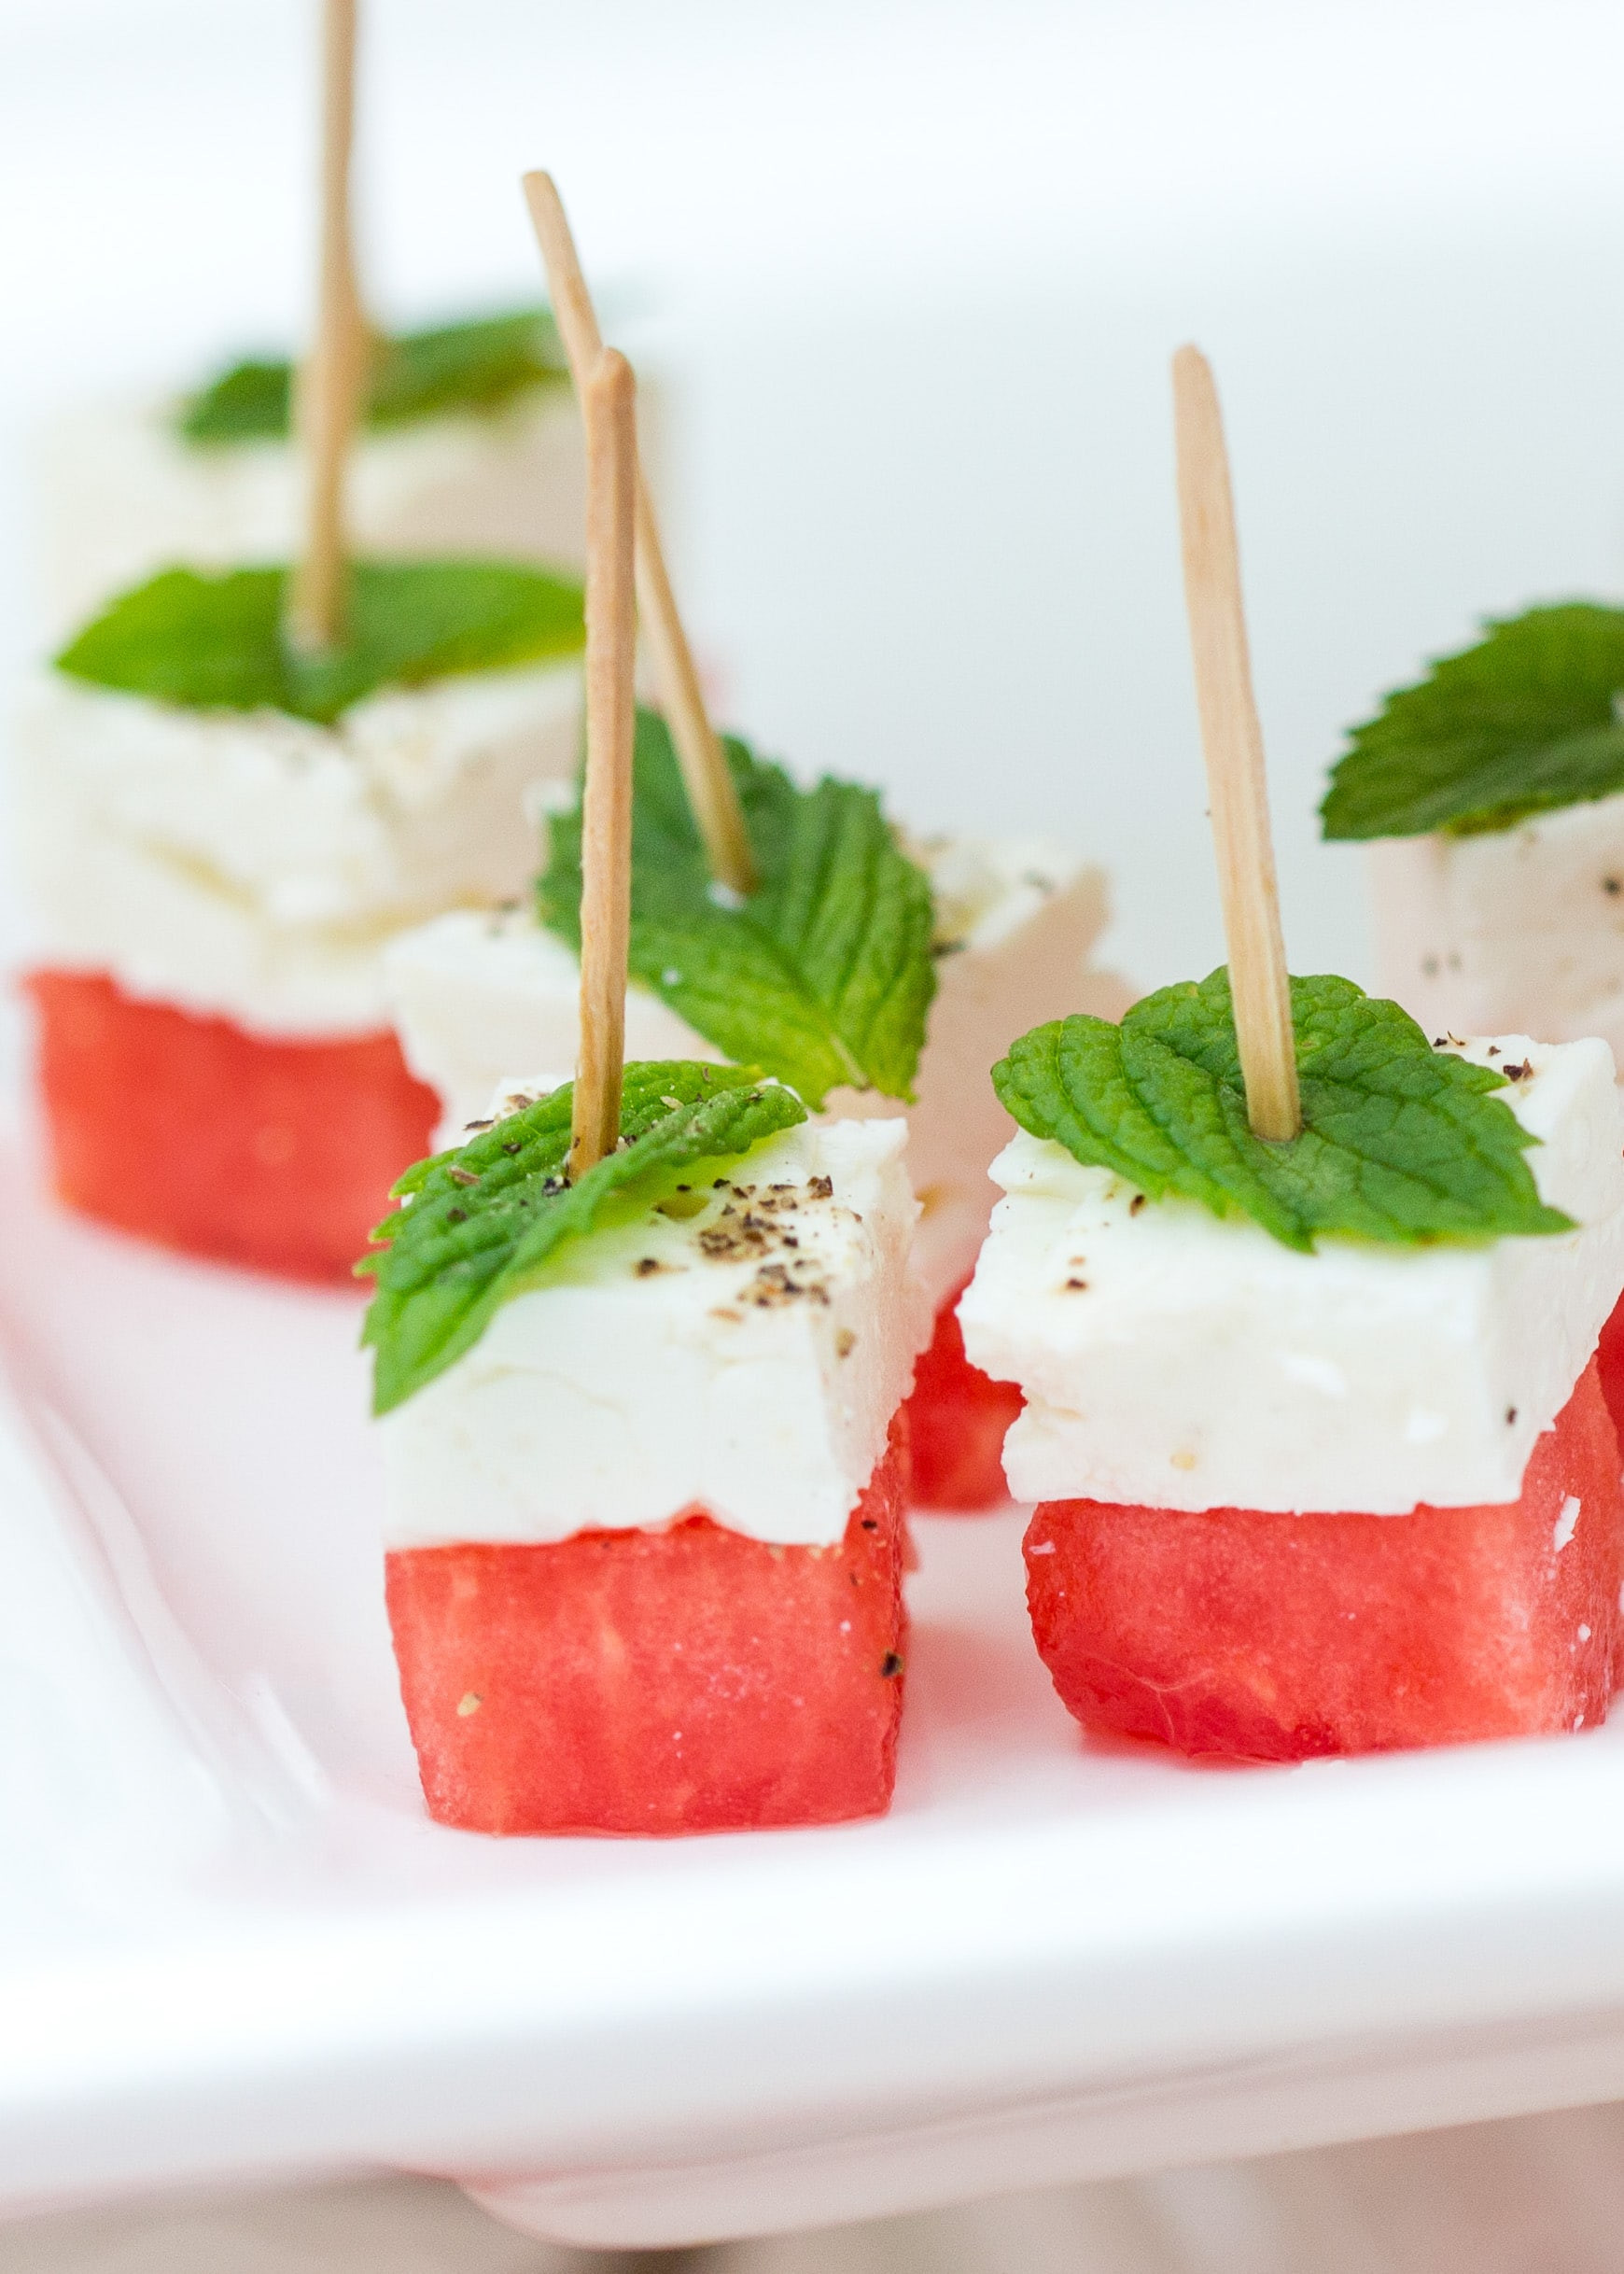 Simple Healthy Appetizers  Healthy Summer Appetizers Easy & Delish Pizzazzerie